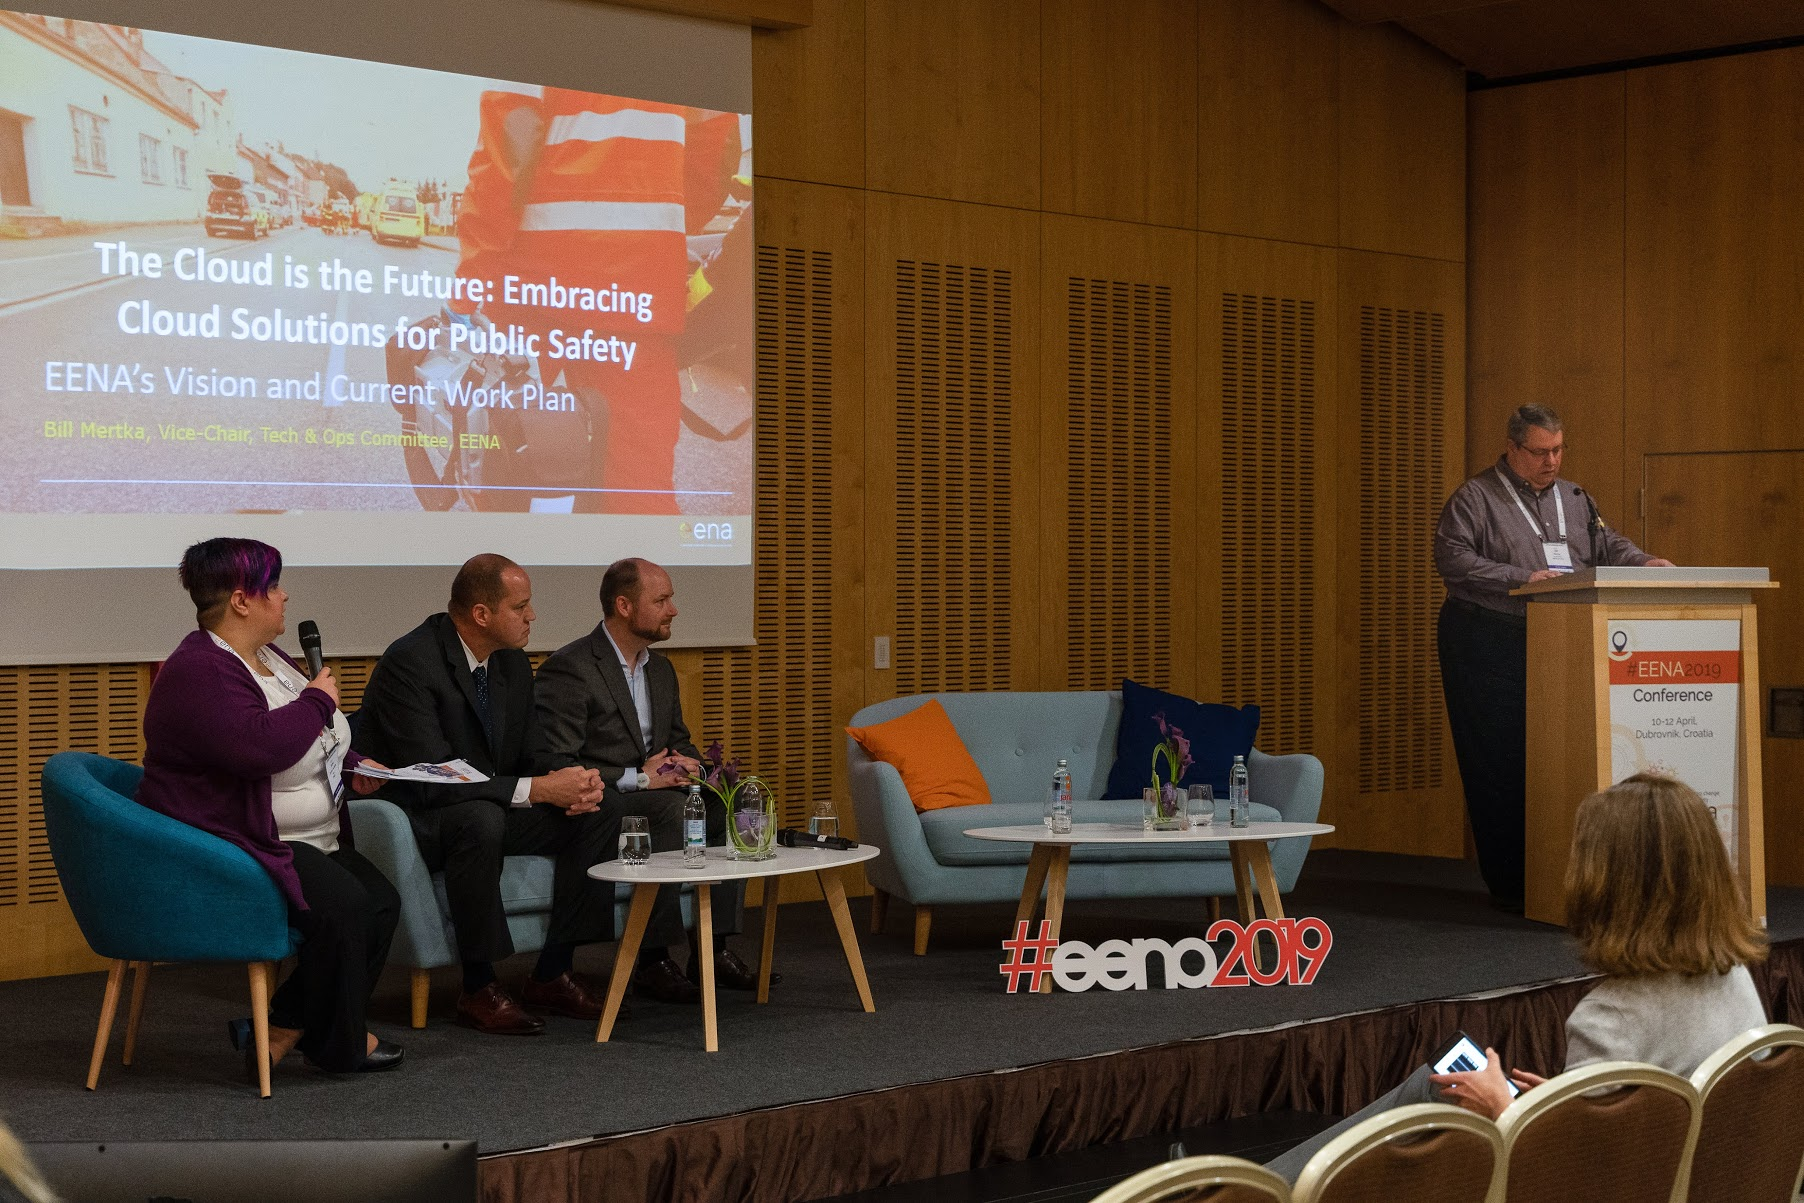 Mike isherwood, managing director of apd participates in the cloud services session at eena 2019